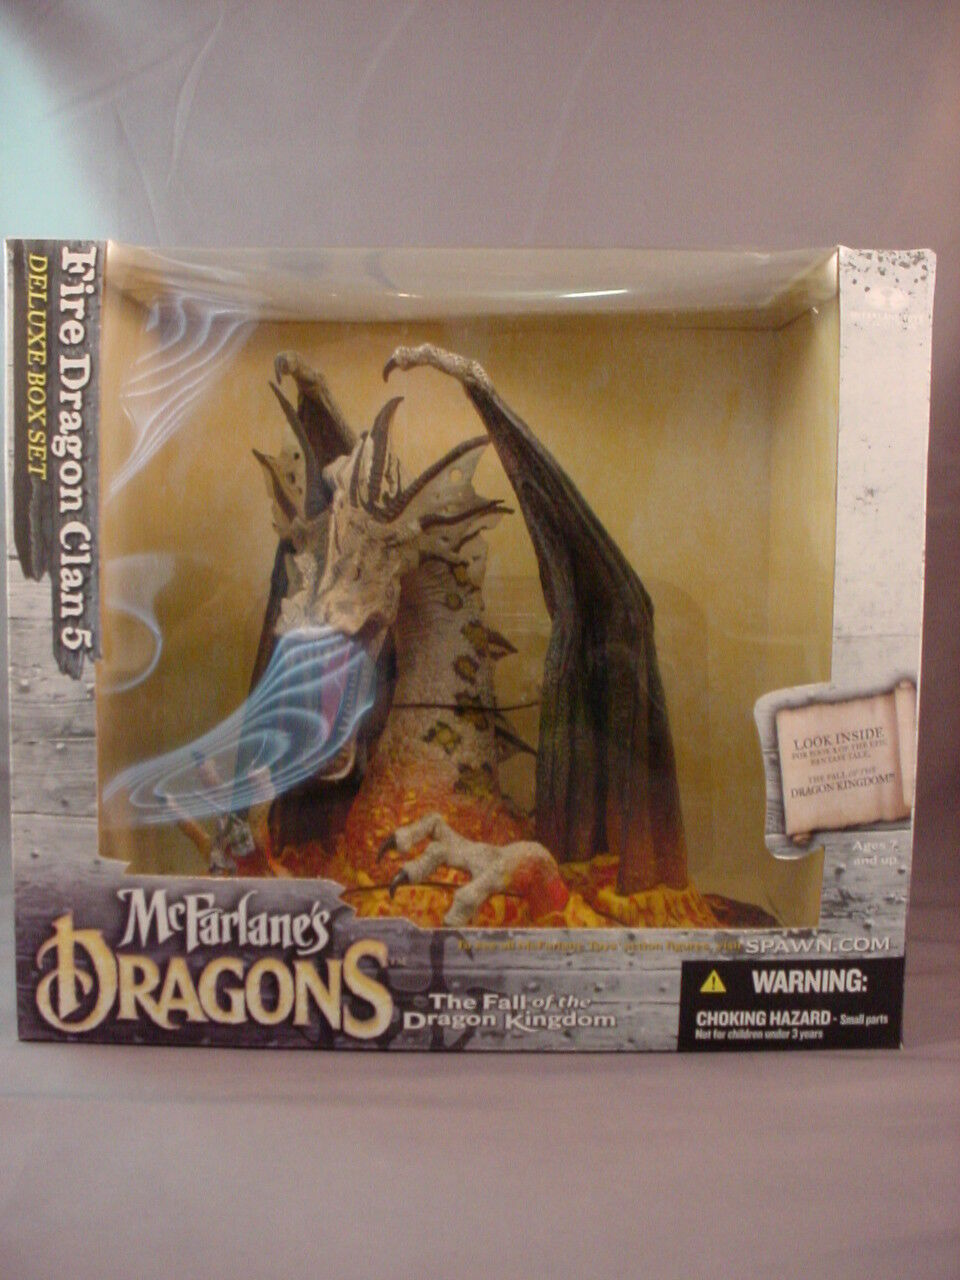 McFARLANE'S DRAGONS SERIES 5 FIRE DRAGON CLAN FIGURE DELUXE BOX SET